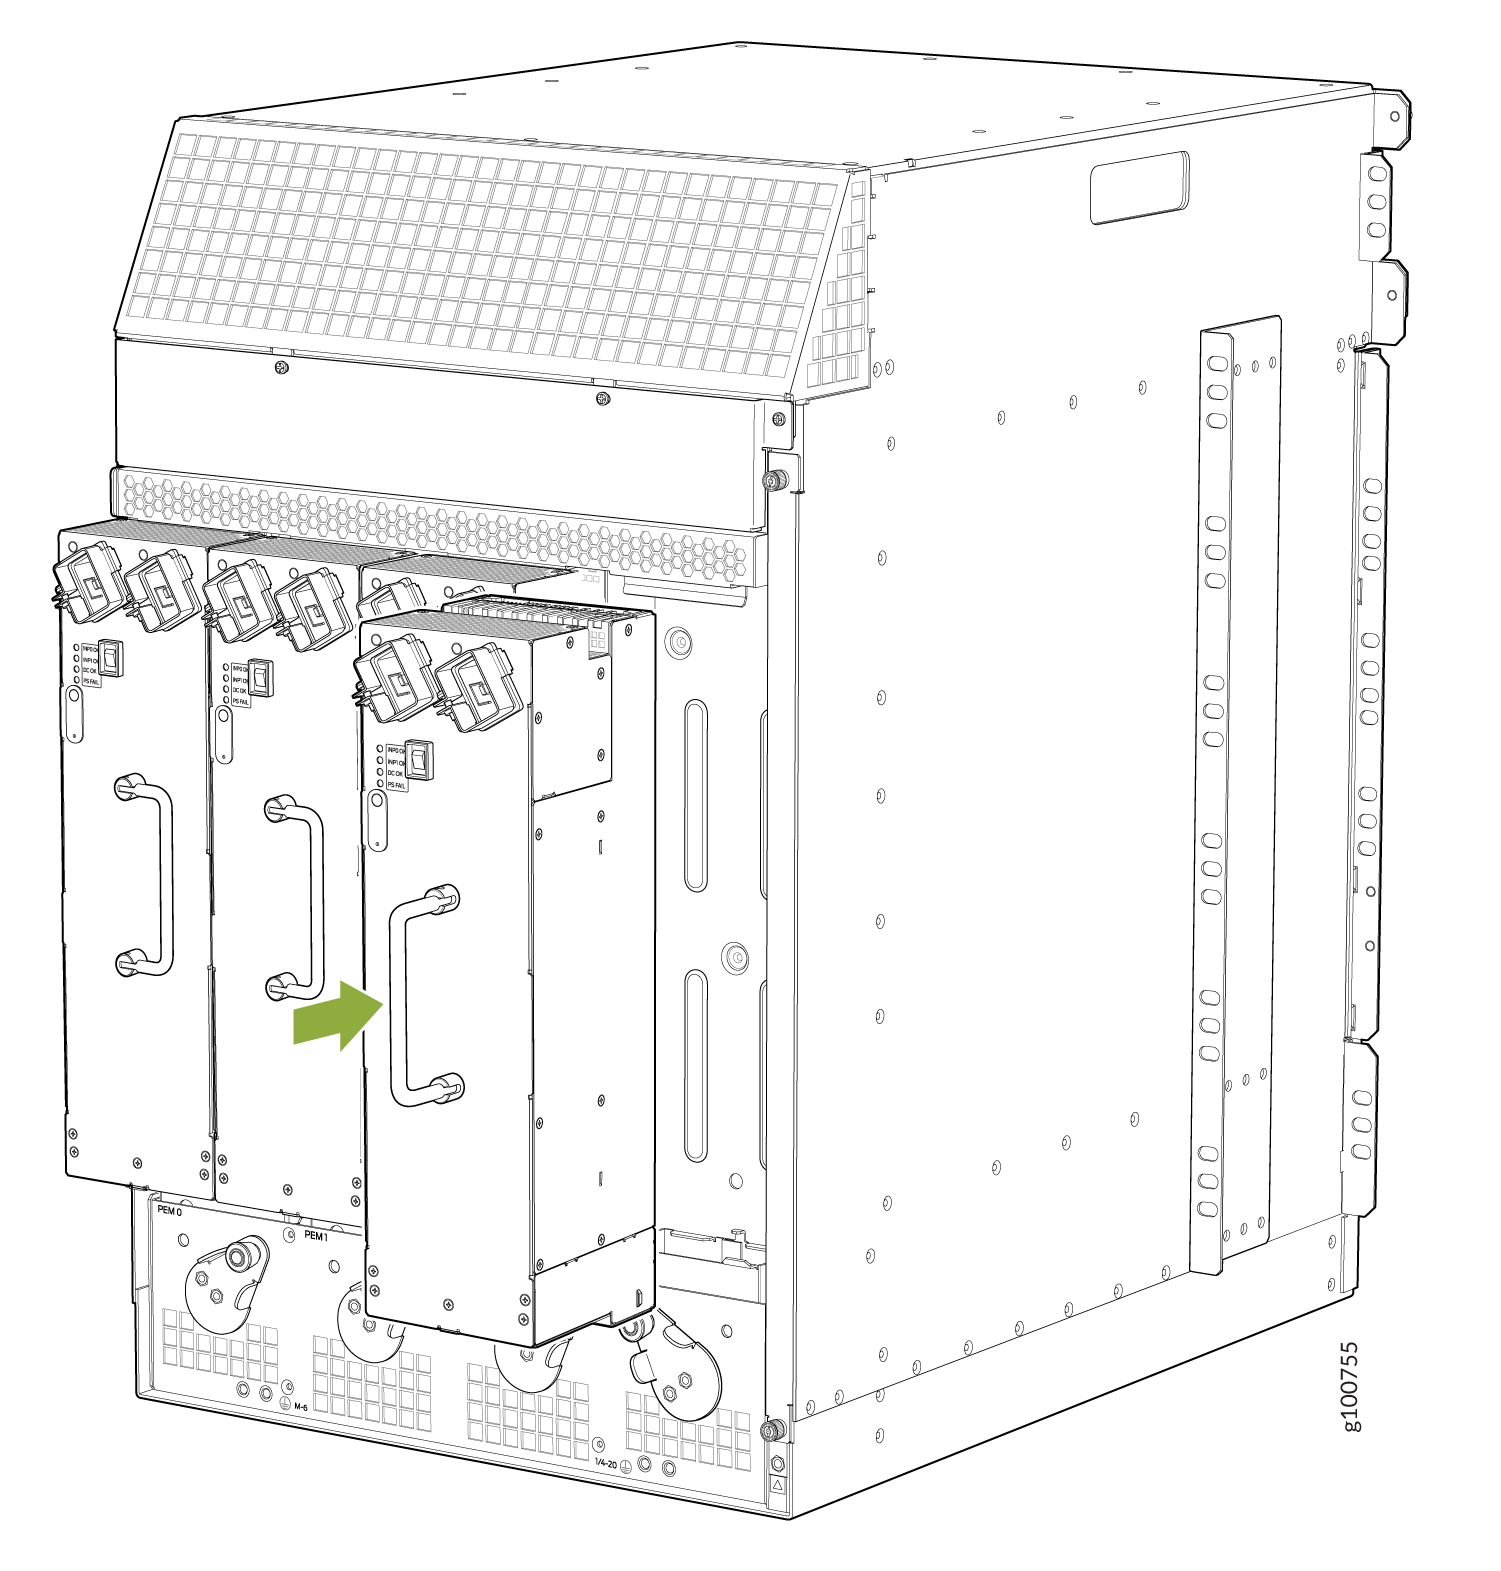 Installing a High-Capacity Second-Generation AC Power Supply